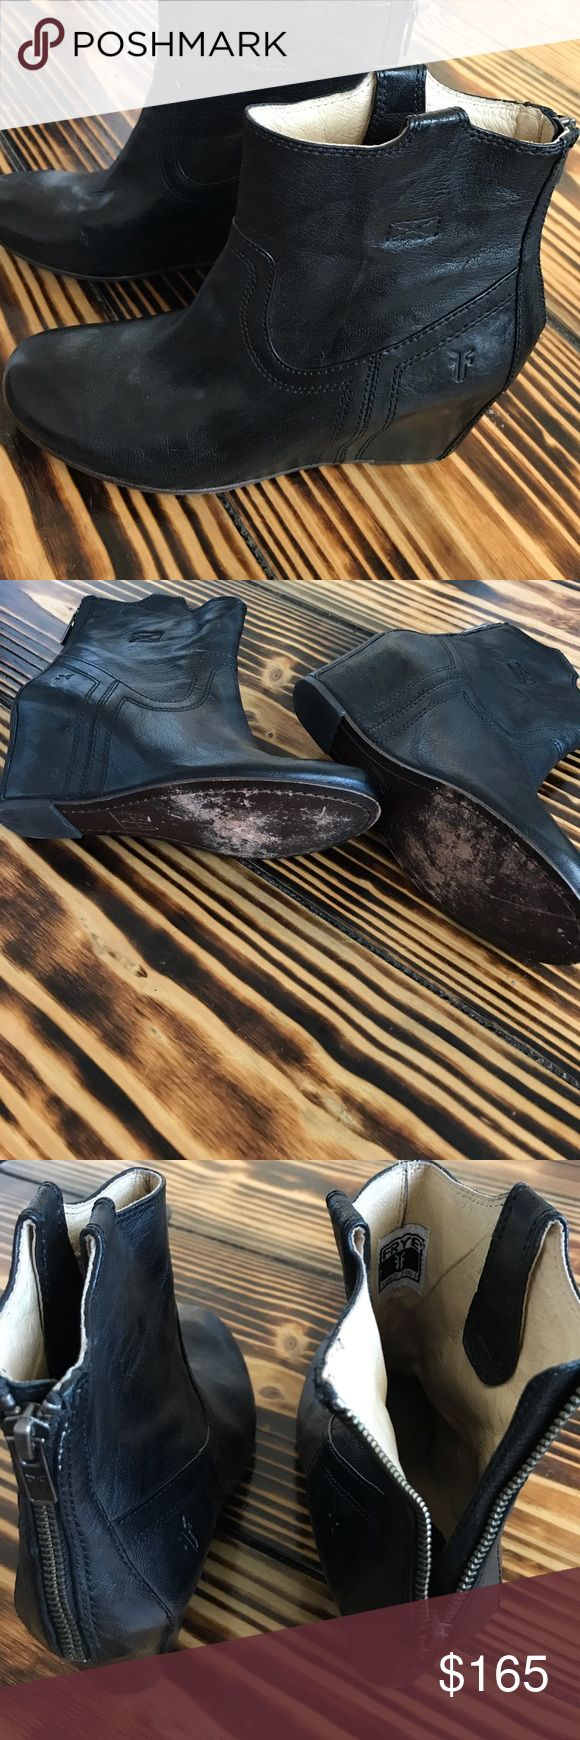 """FRYE """"CARSON"""" Wedge Bootie Boots EUC, they have leather soles so the damage is due to 2 wears. I actually purchased these brand new and I've worn them twice. There is no other notable scuffing or damage of any kind. 20% off any 2! Frye Shoes Ankle Boots & Booties"""